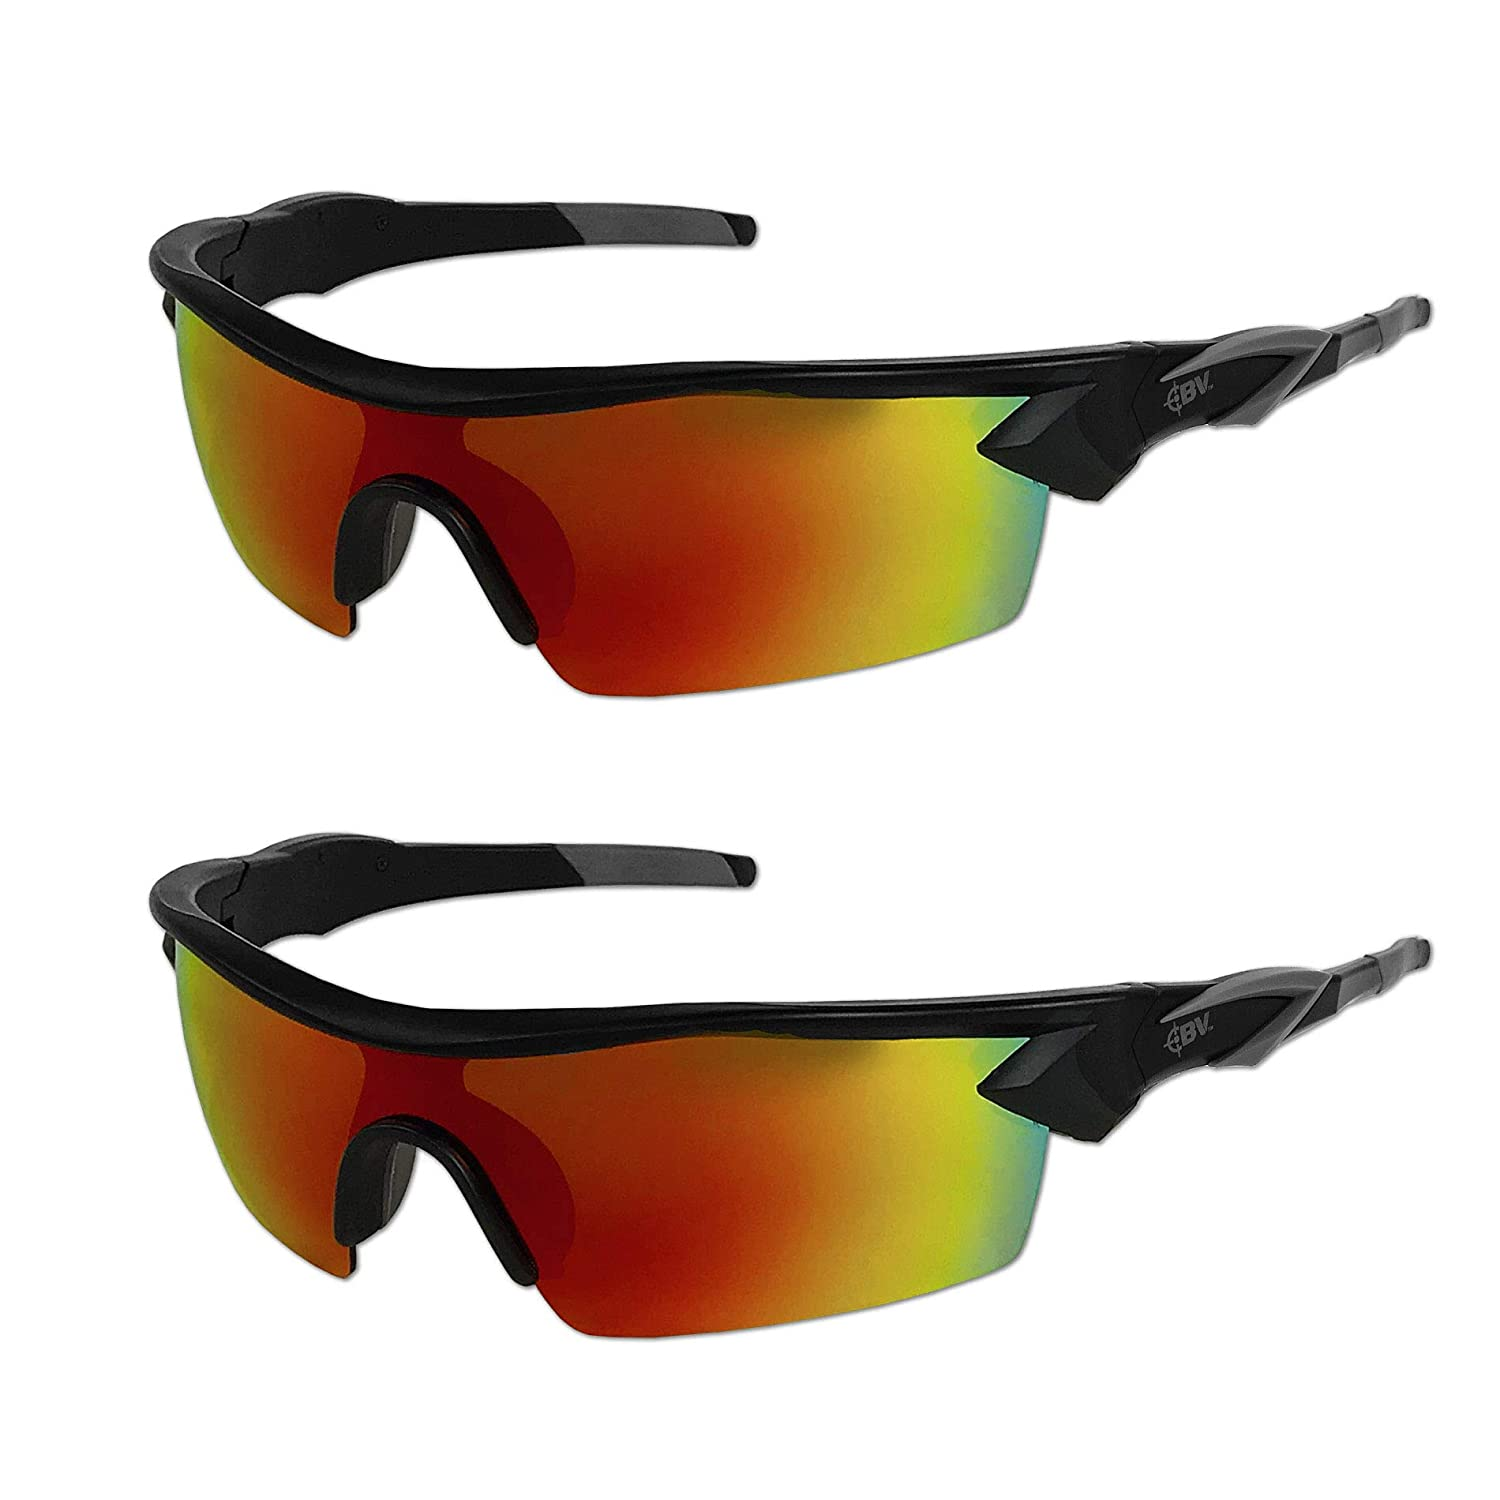 Battle Vision HD Polarized Sunglasses by Atomic Beam, UV Block Sunglasses Protect Eyes & Gives Your Vision Clarity (2 Pairs)